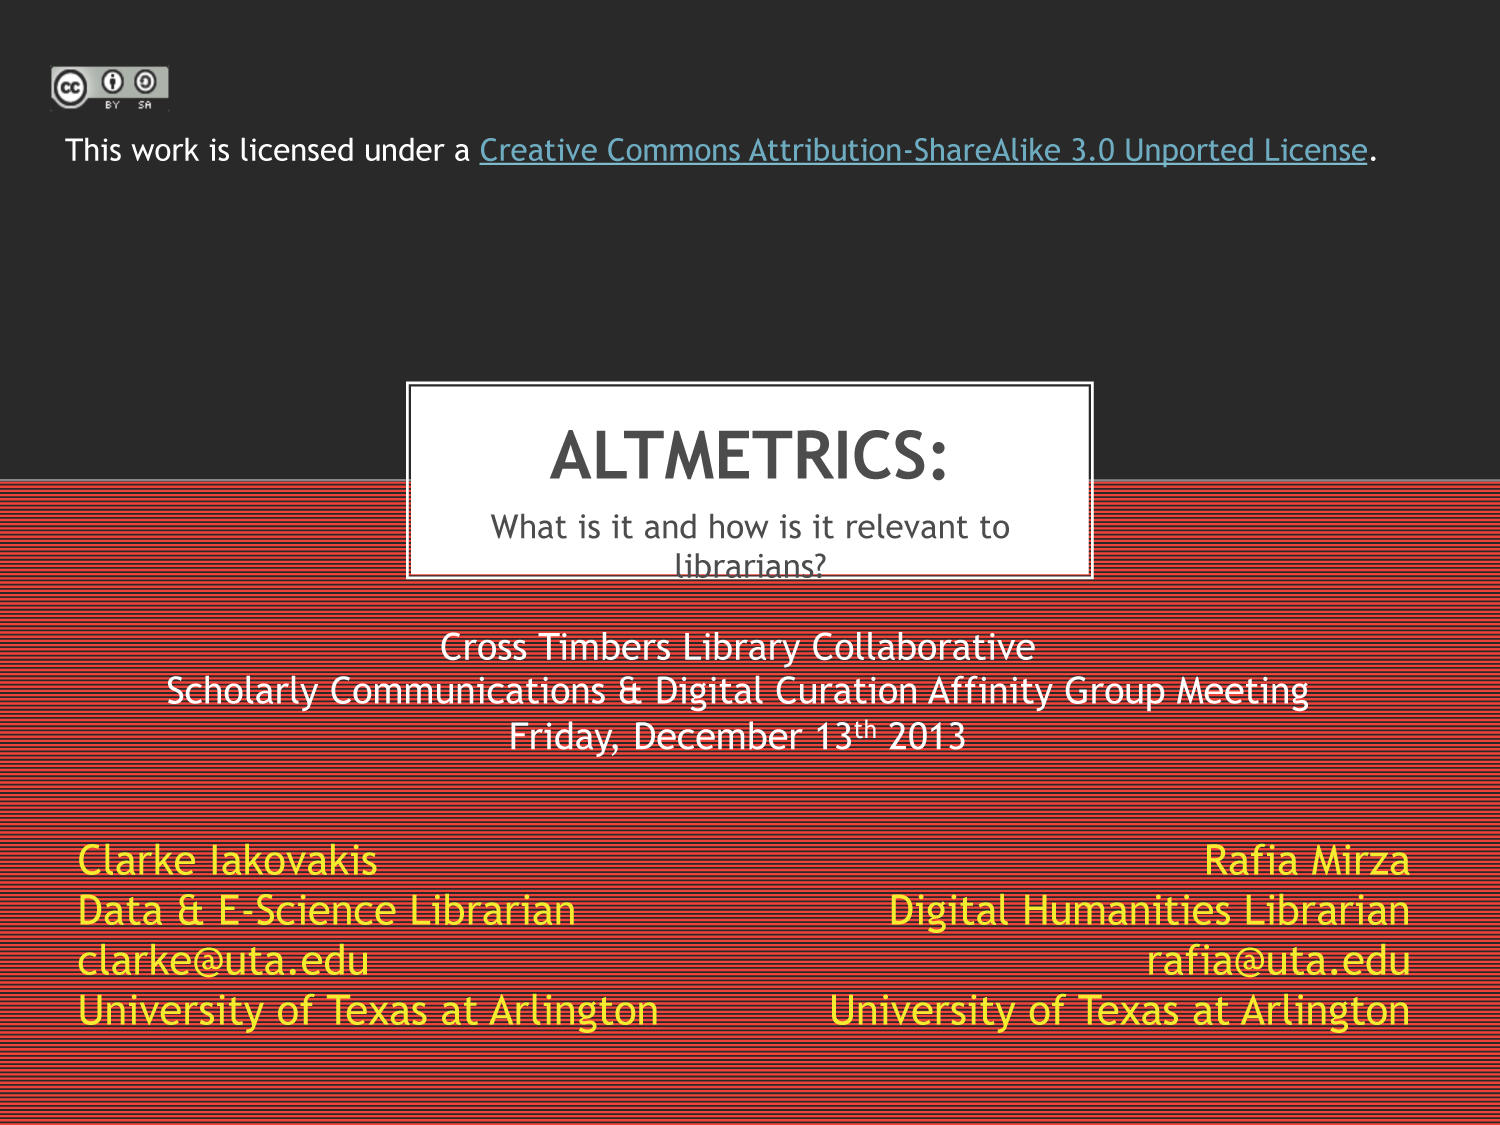 Altmetrics: What is it and how is it relevant to librarians?                                                                                                      [Sequence #]: 1 of 19